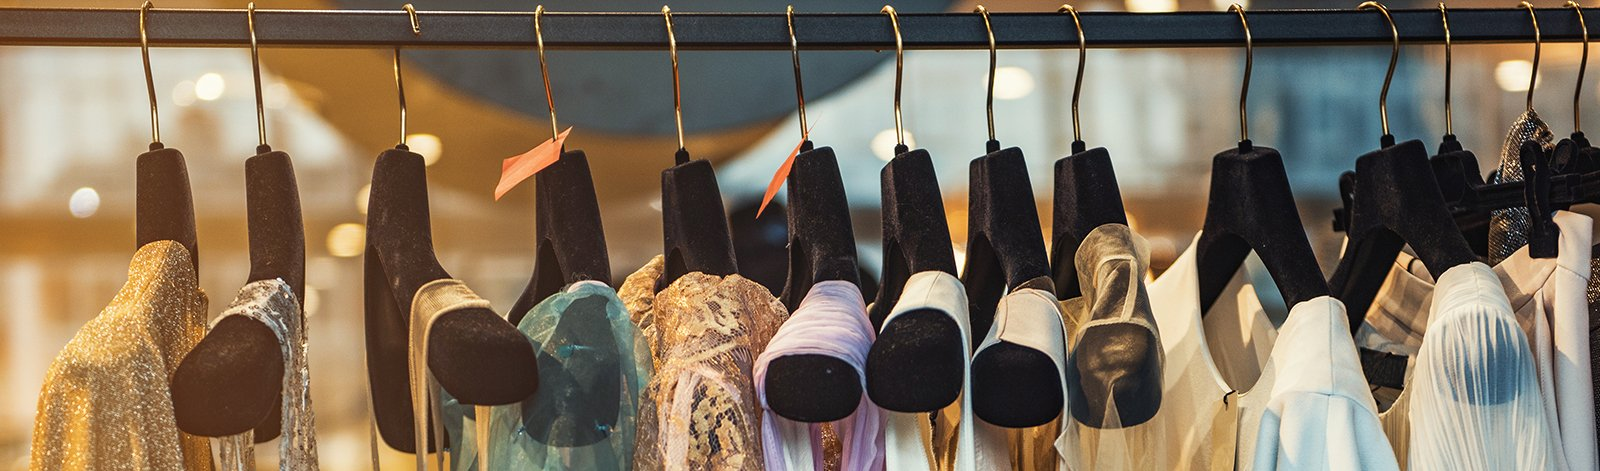 Fashionable clothes on a rack